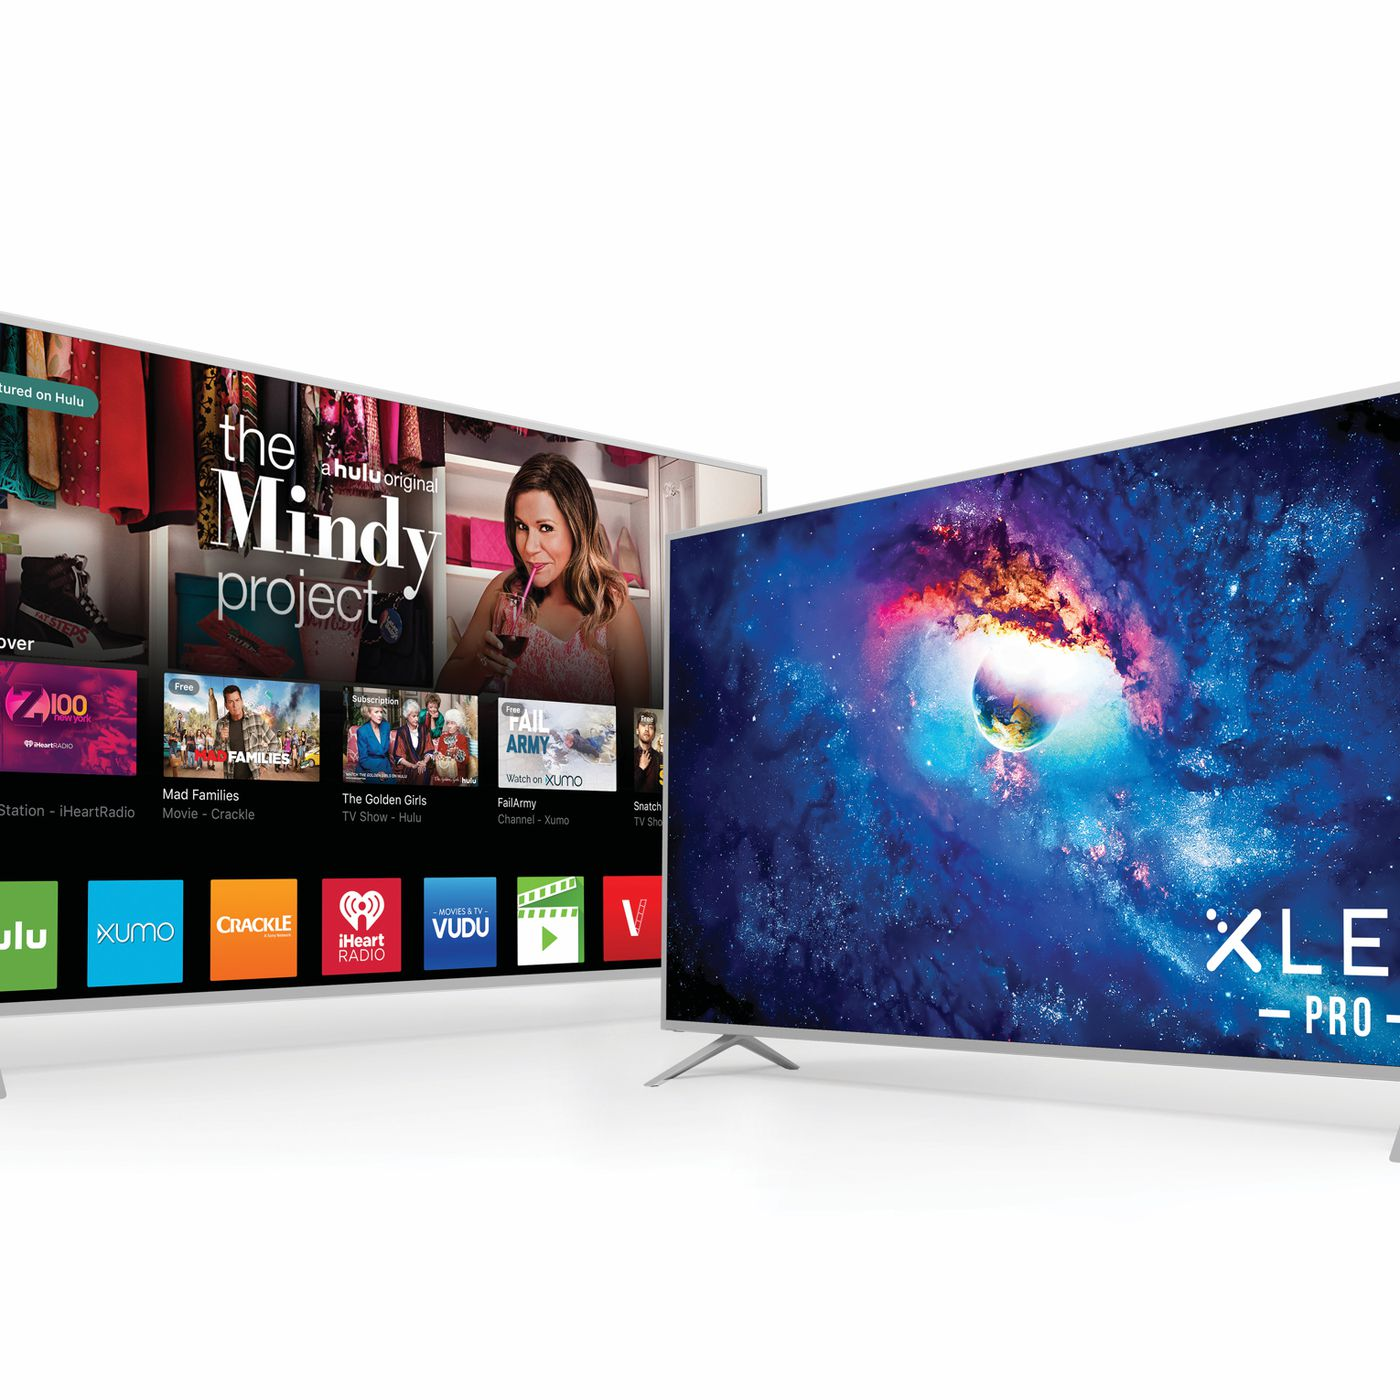 Vizio's new TVs go back to built-in apps and a normal remote